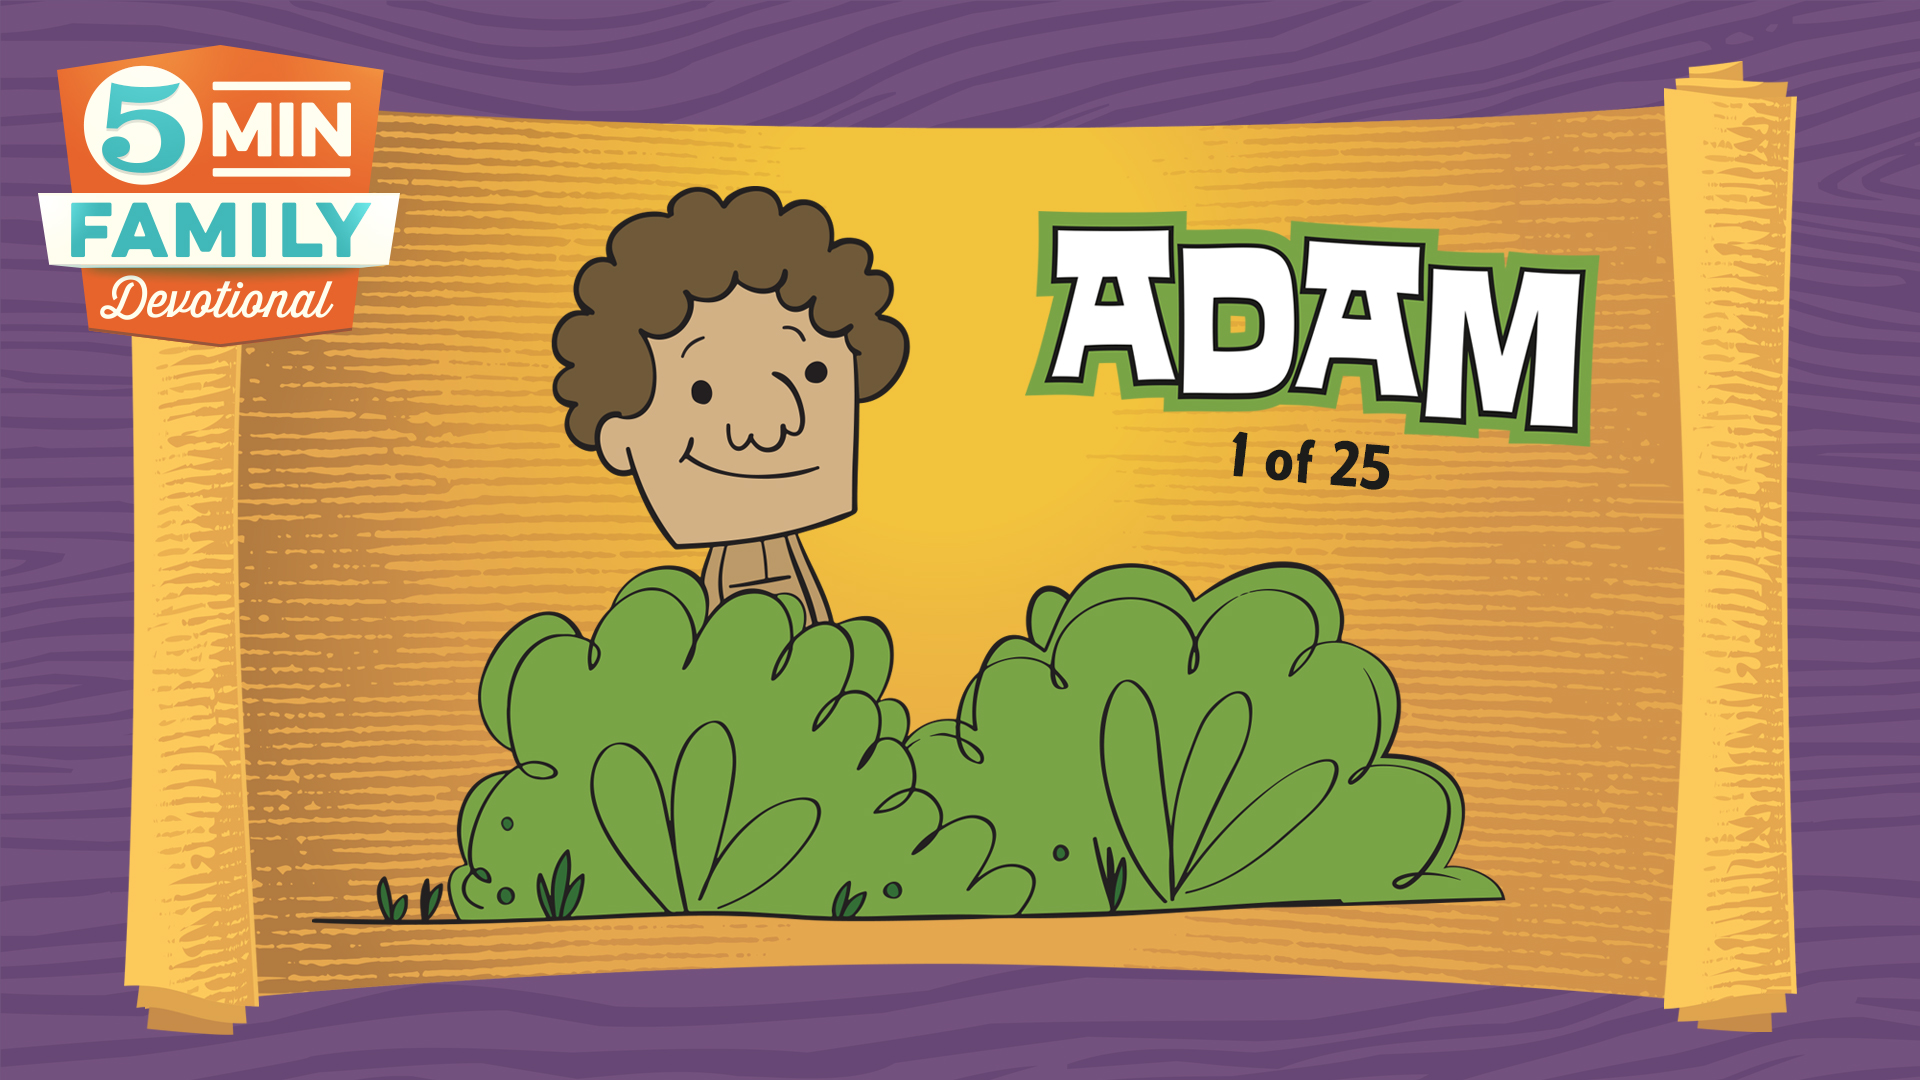 Adam made in gods image